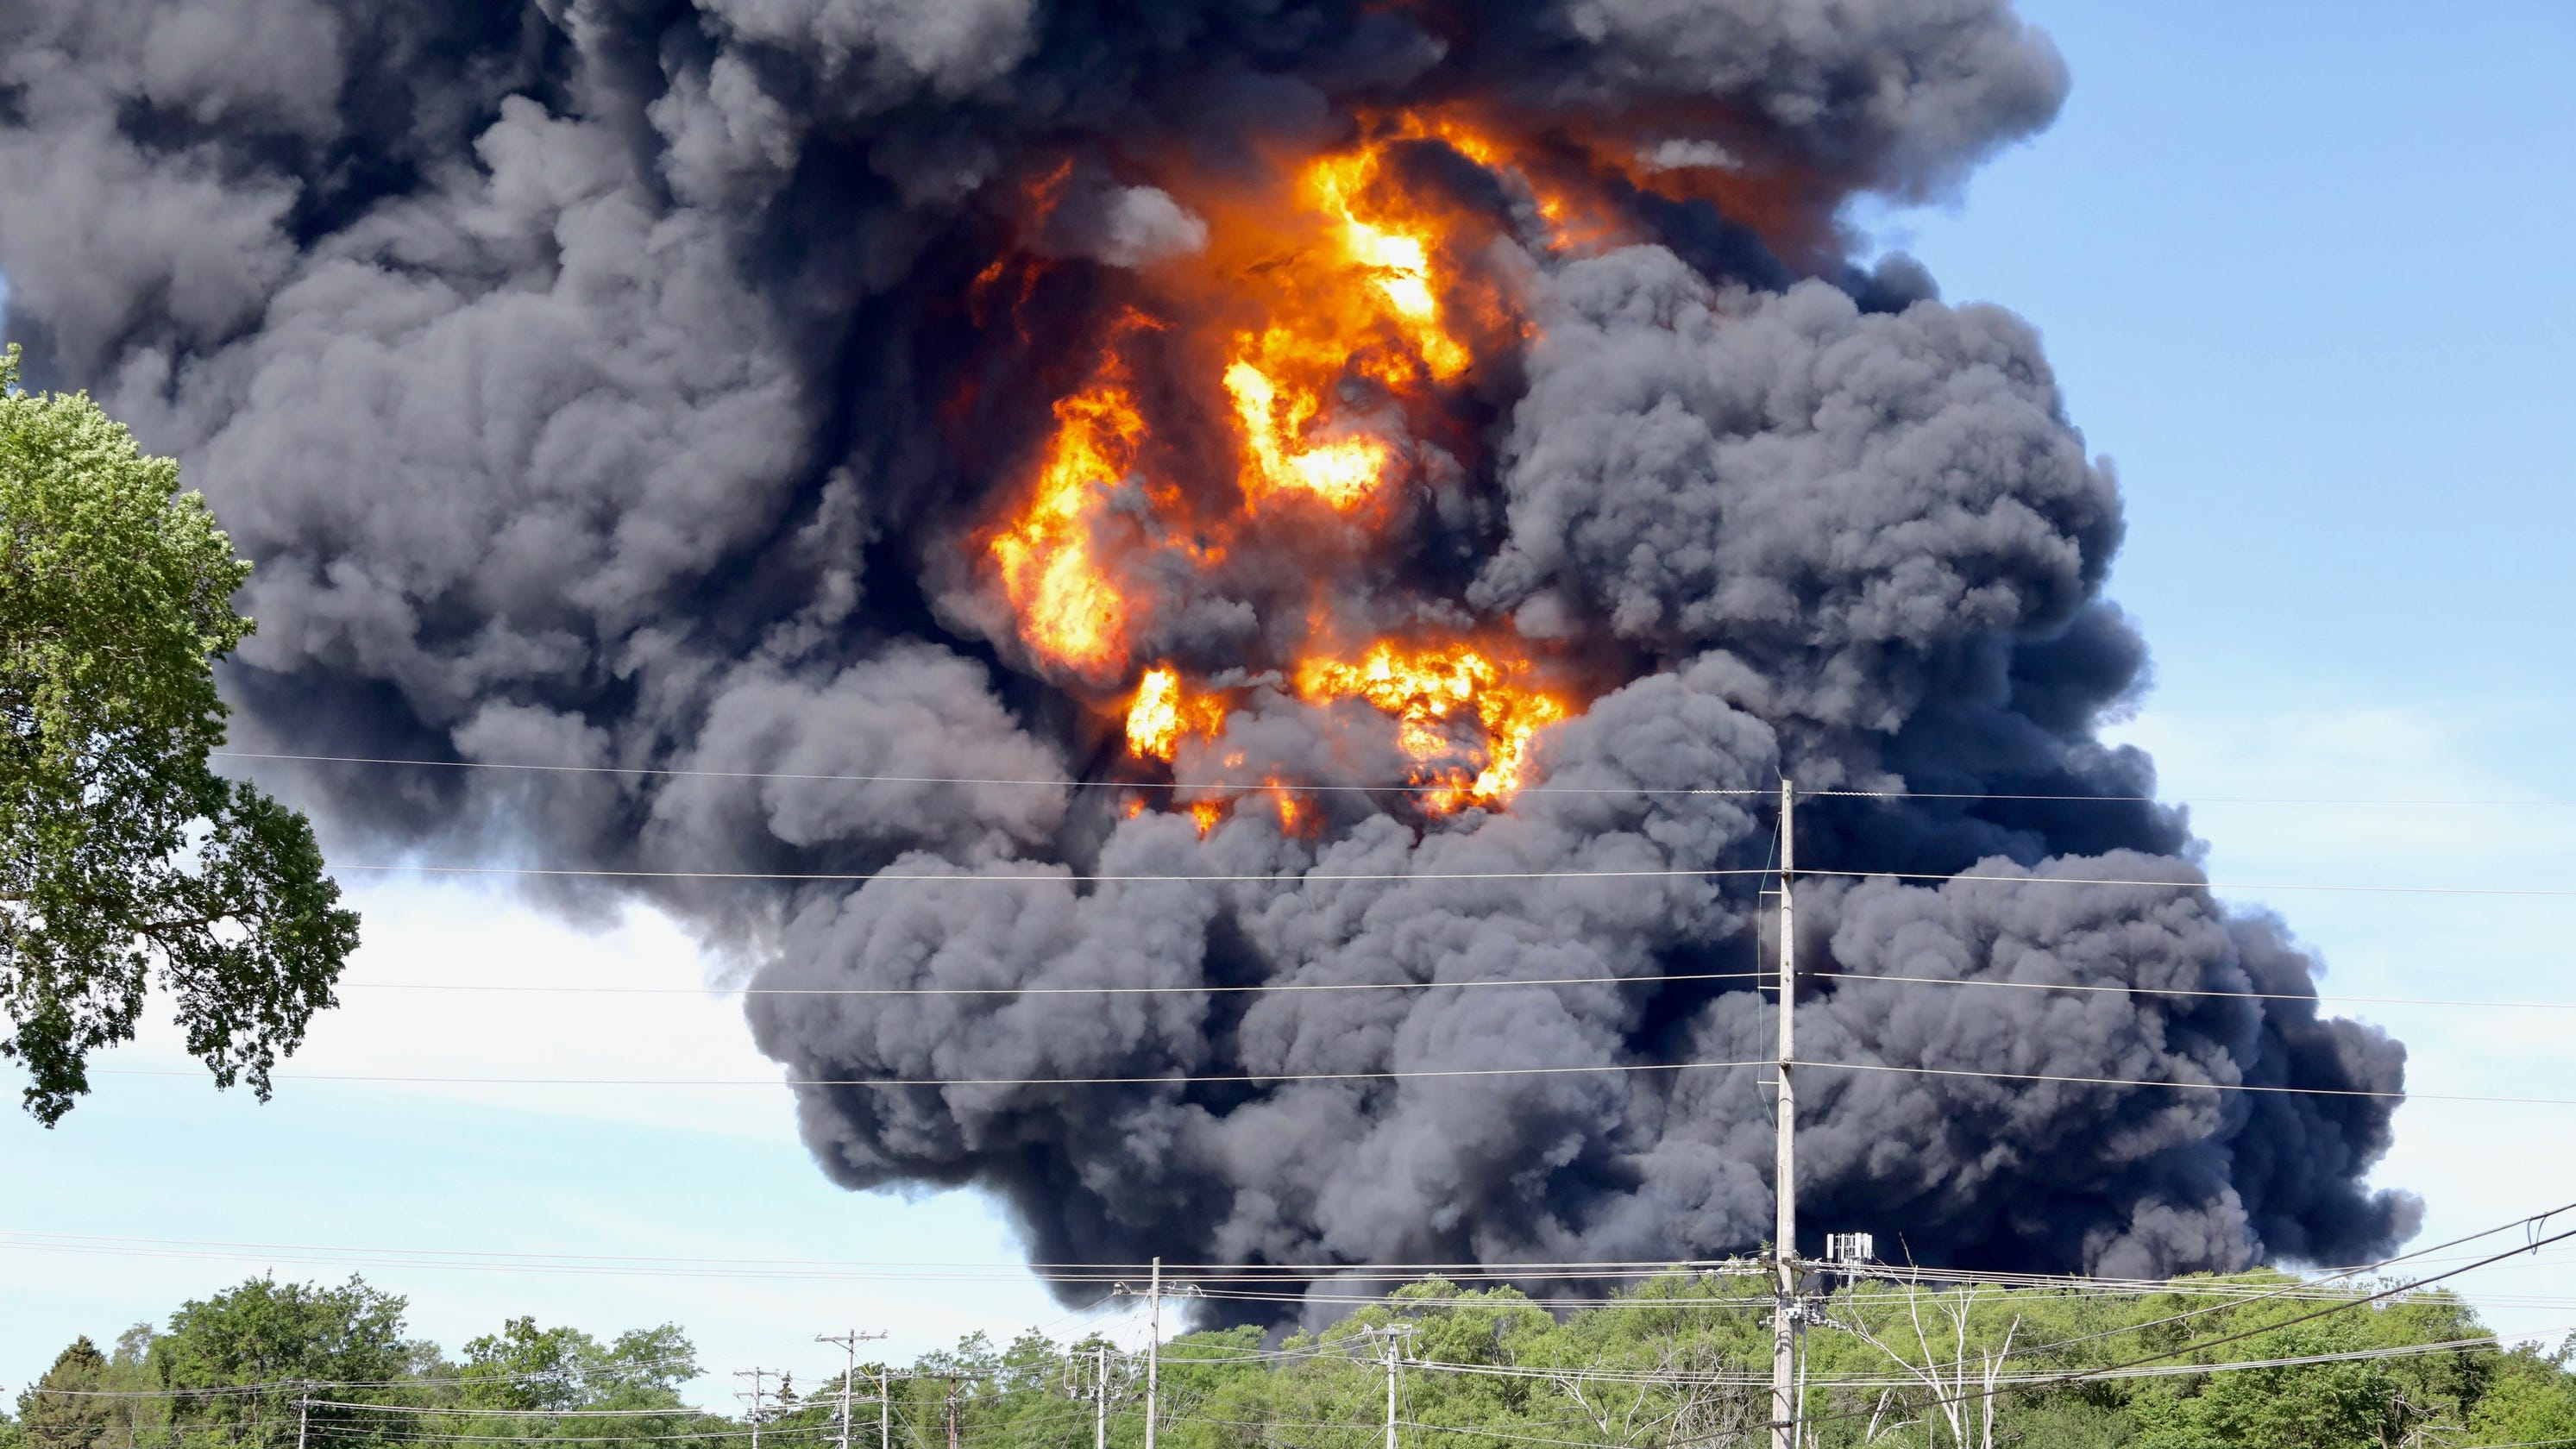 A massive fire destroyed a chemical plant in Rockton, Illinois. It could burn for days, officials say.